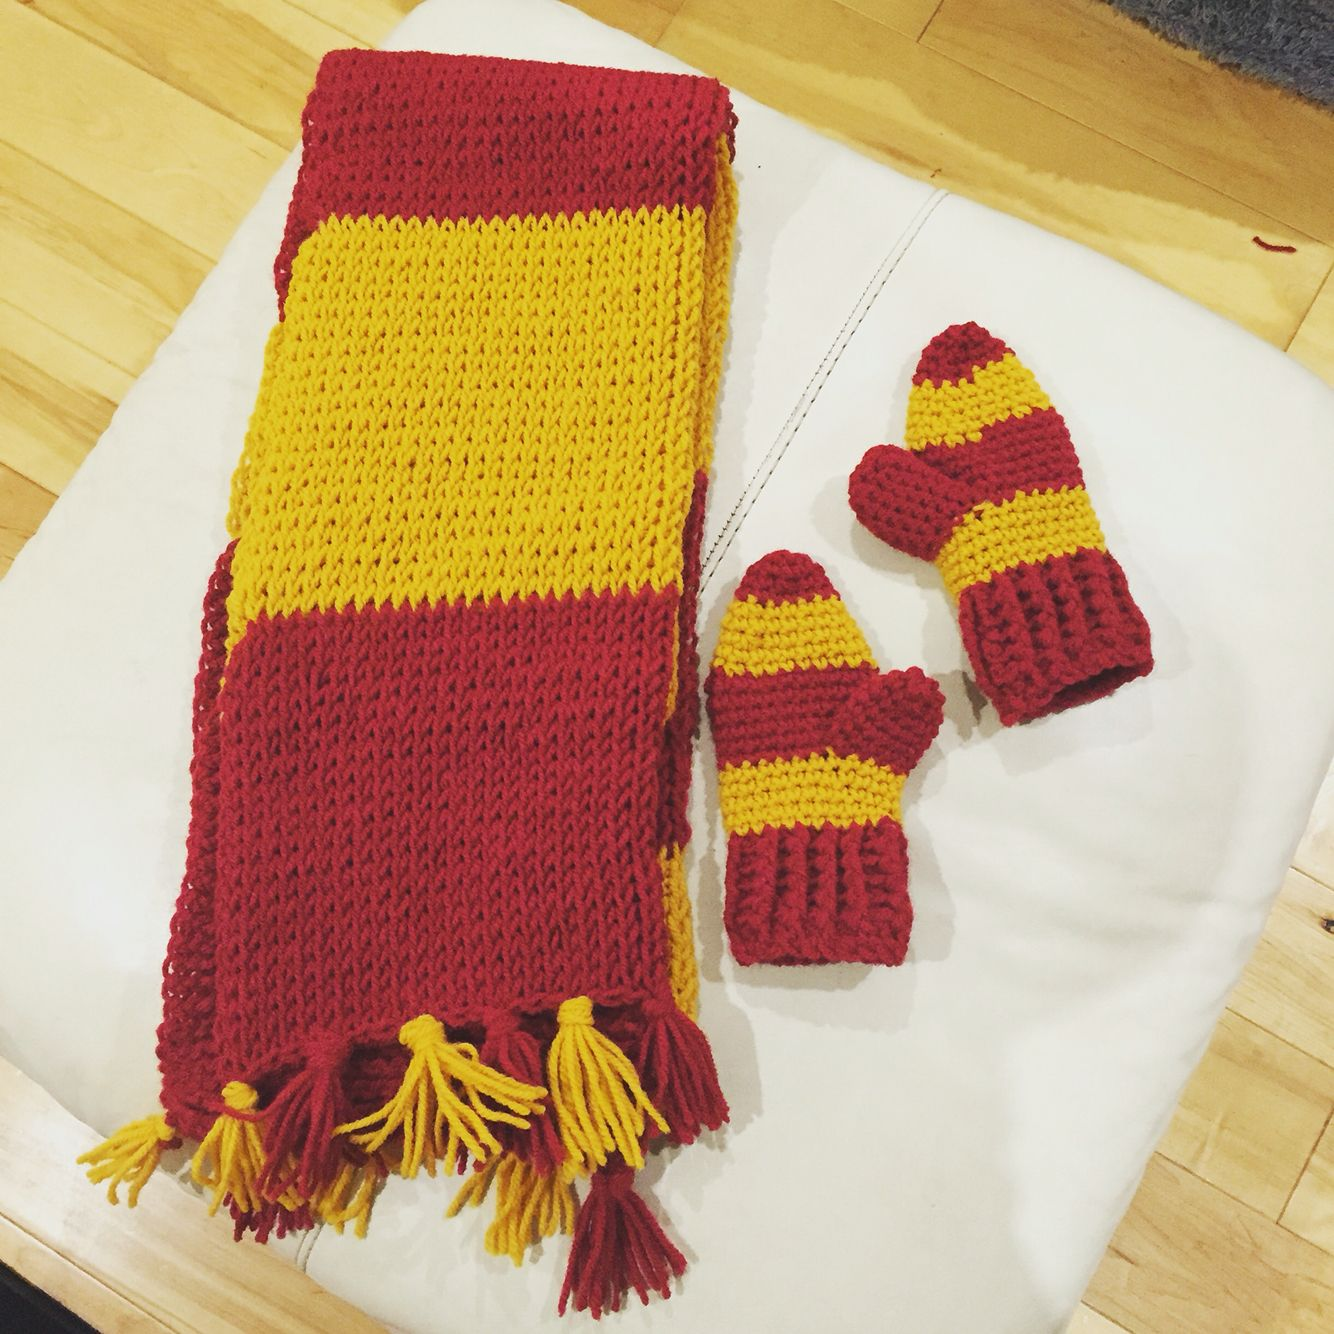 My Harry Potter scarf and mitten set | Crochet and Knitting ...